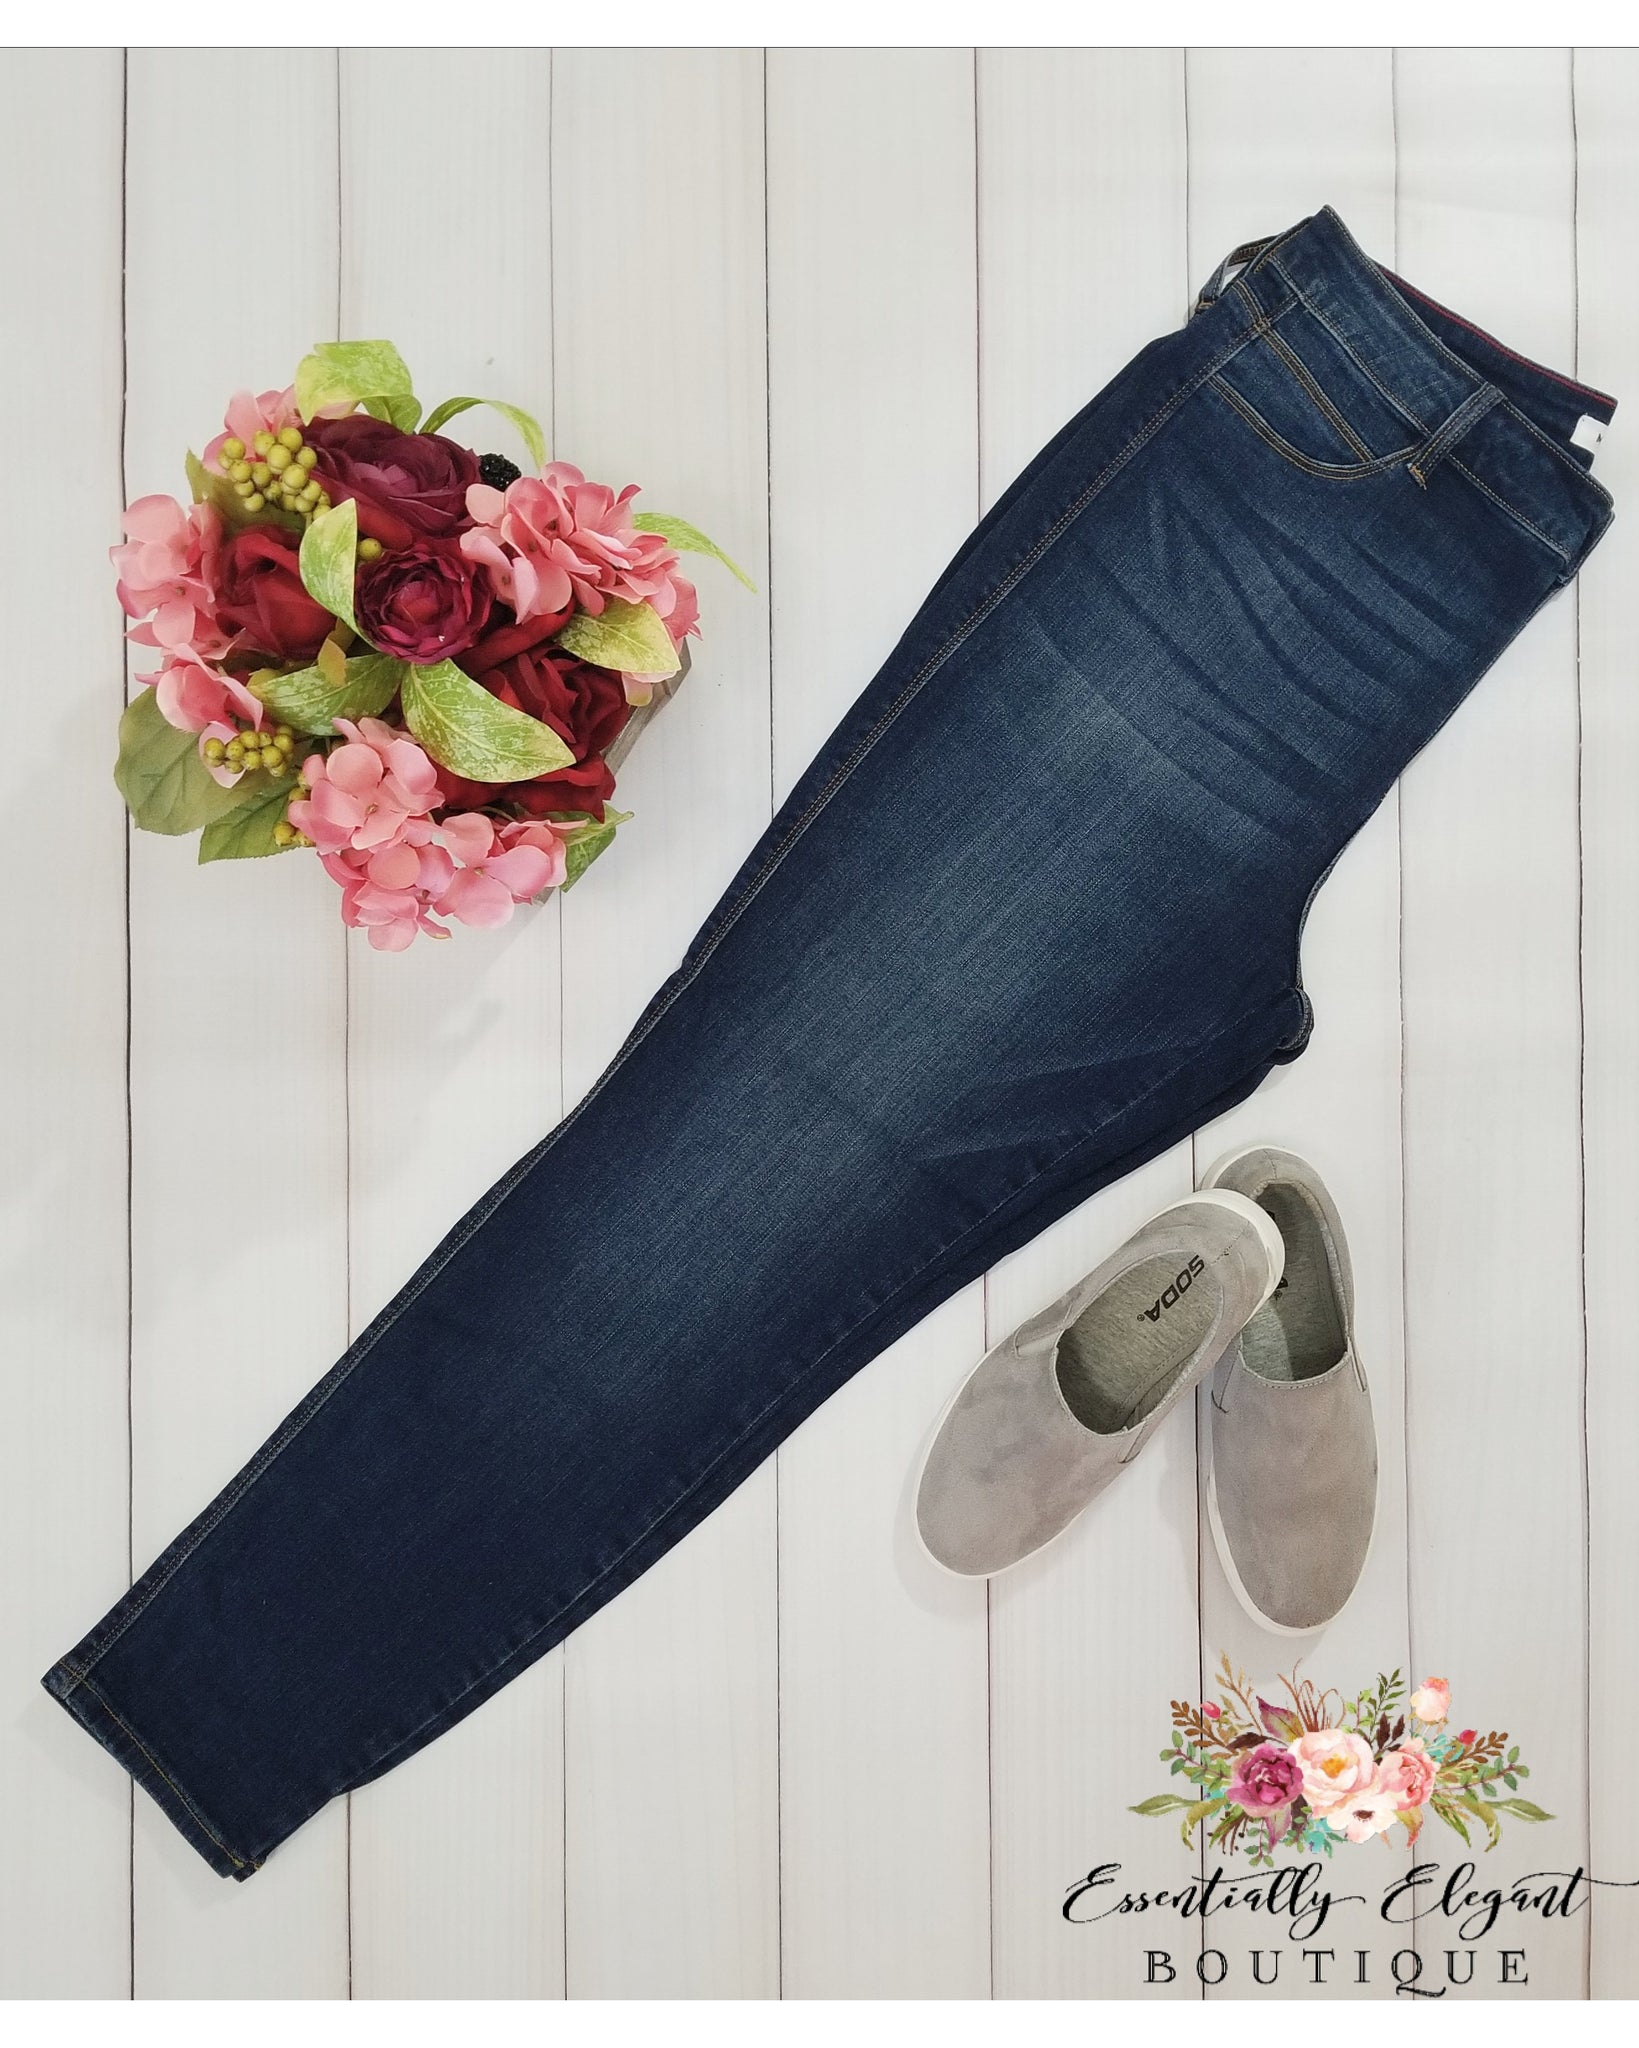 Cello High Rise Skinny Jeans - Dark Denim - Plus Size - Essentially Elegant